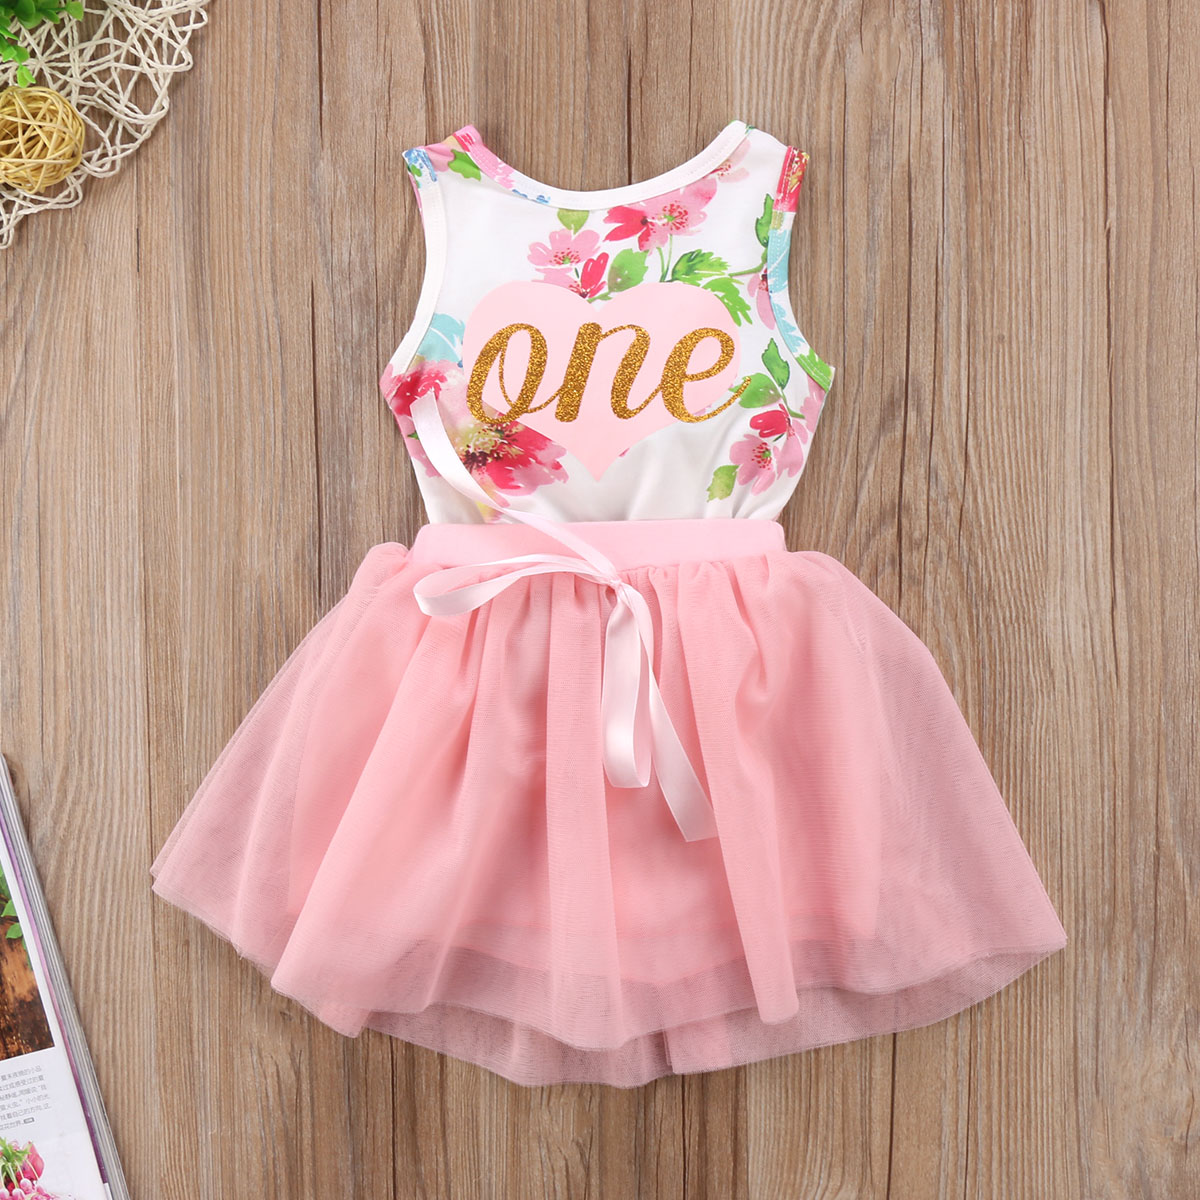 ONE Dress Newborn Baby Girls Clothes Floral Tops Romper Tulle Tutu Dress Outfits Set UK